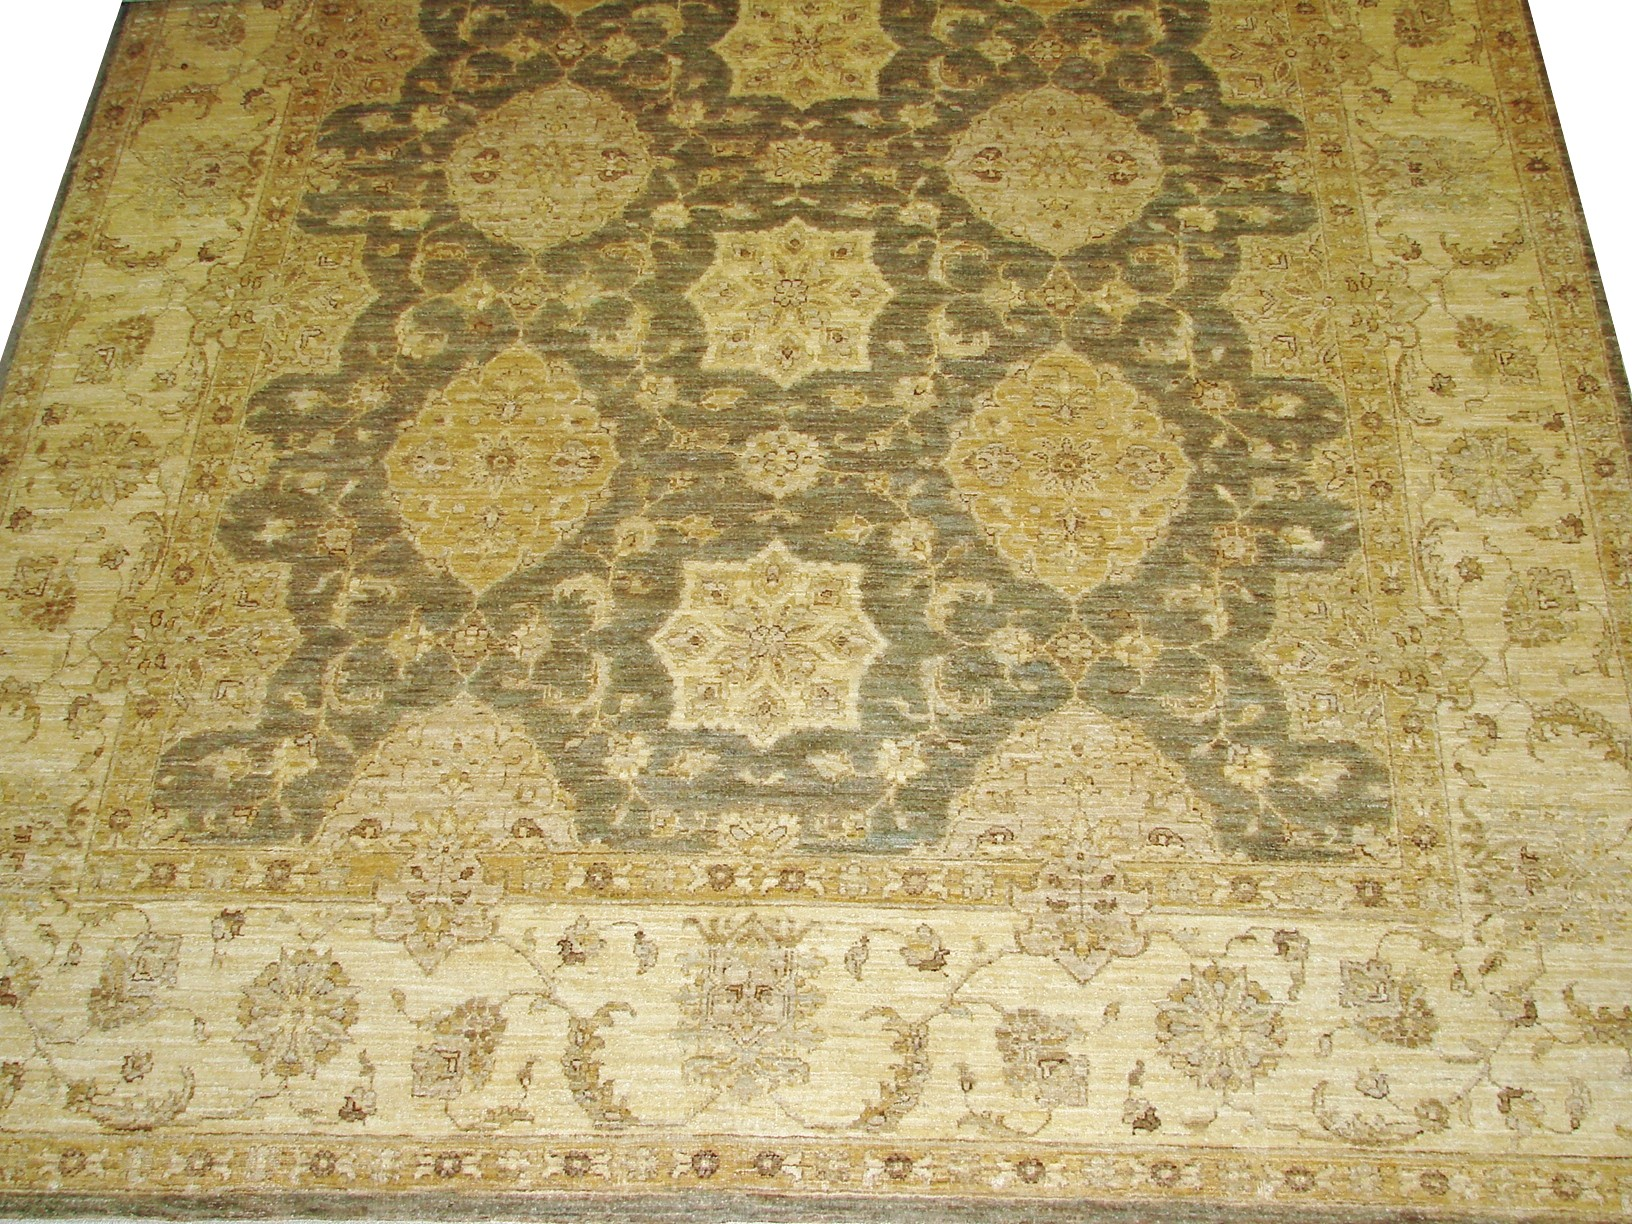 8x10 Peshawar Hand Knotted Wool Area Rug - MR13313